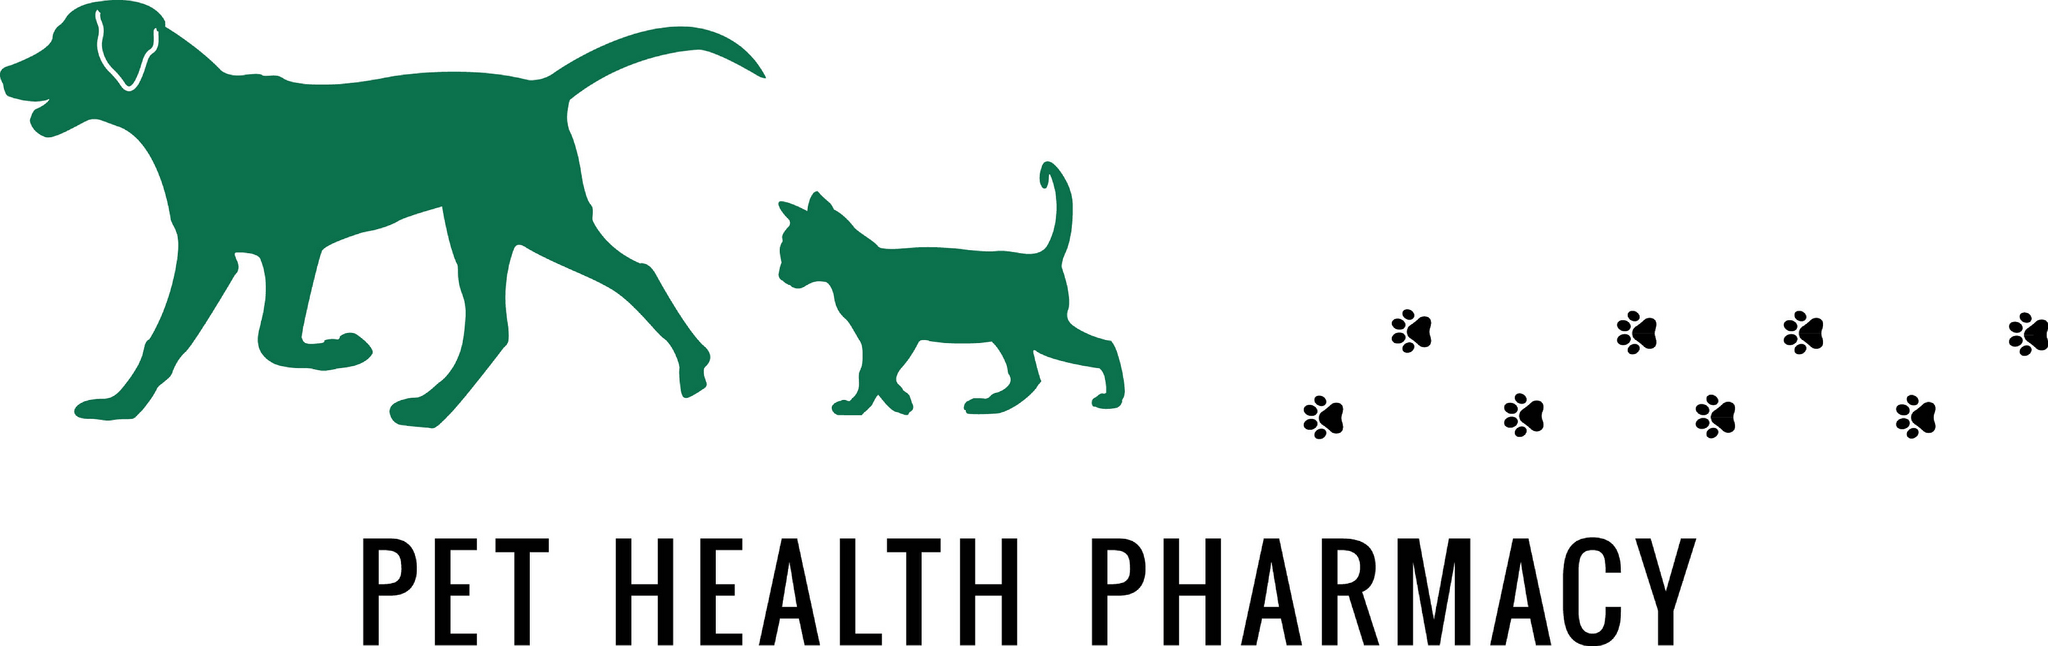 Pet Health Pharmacy